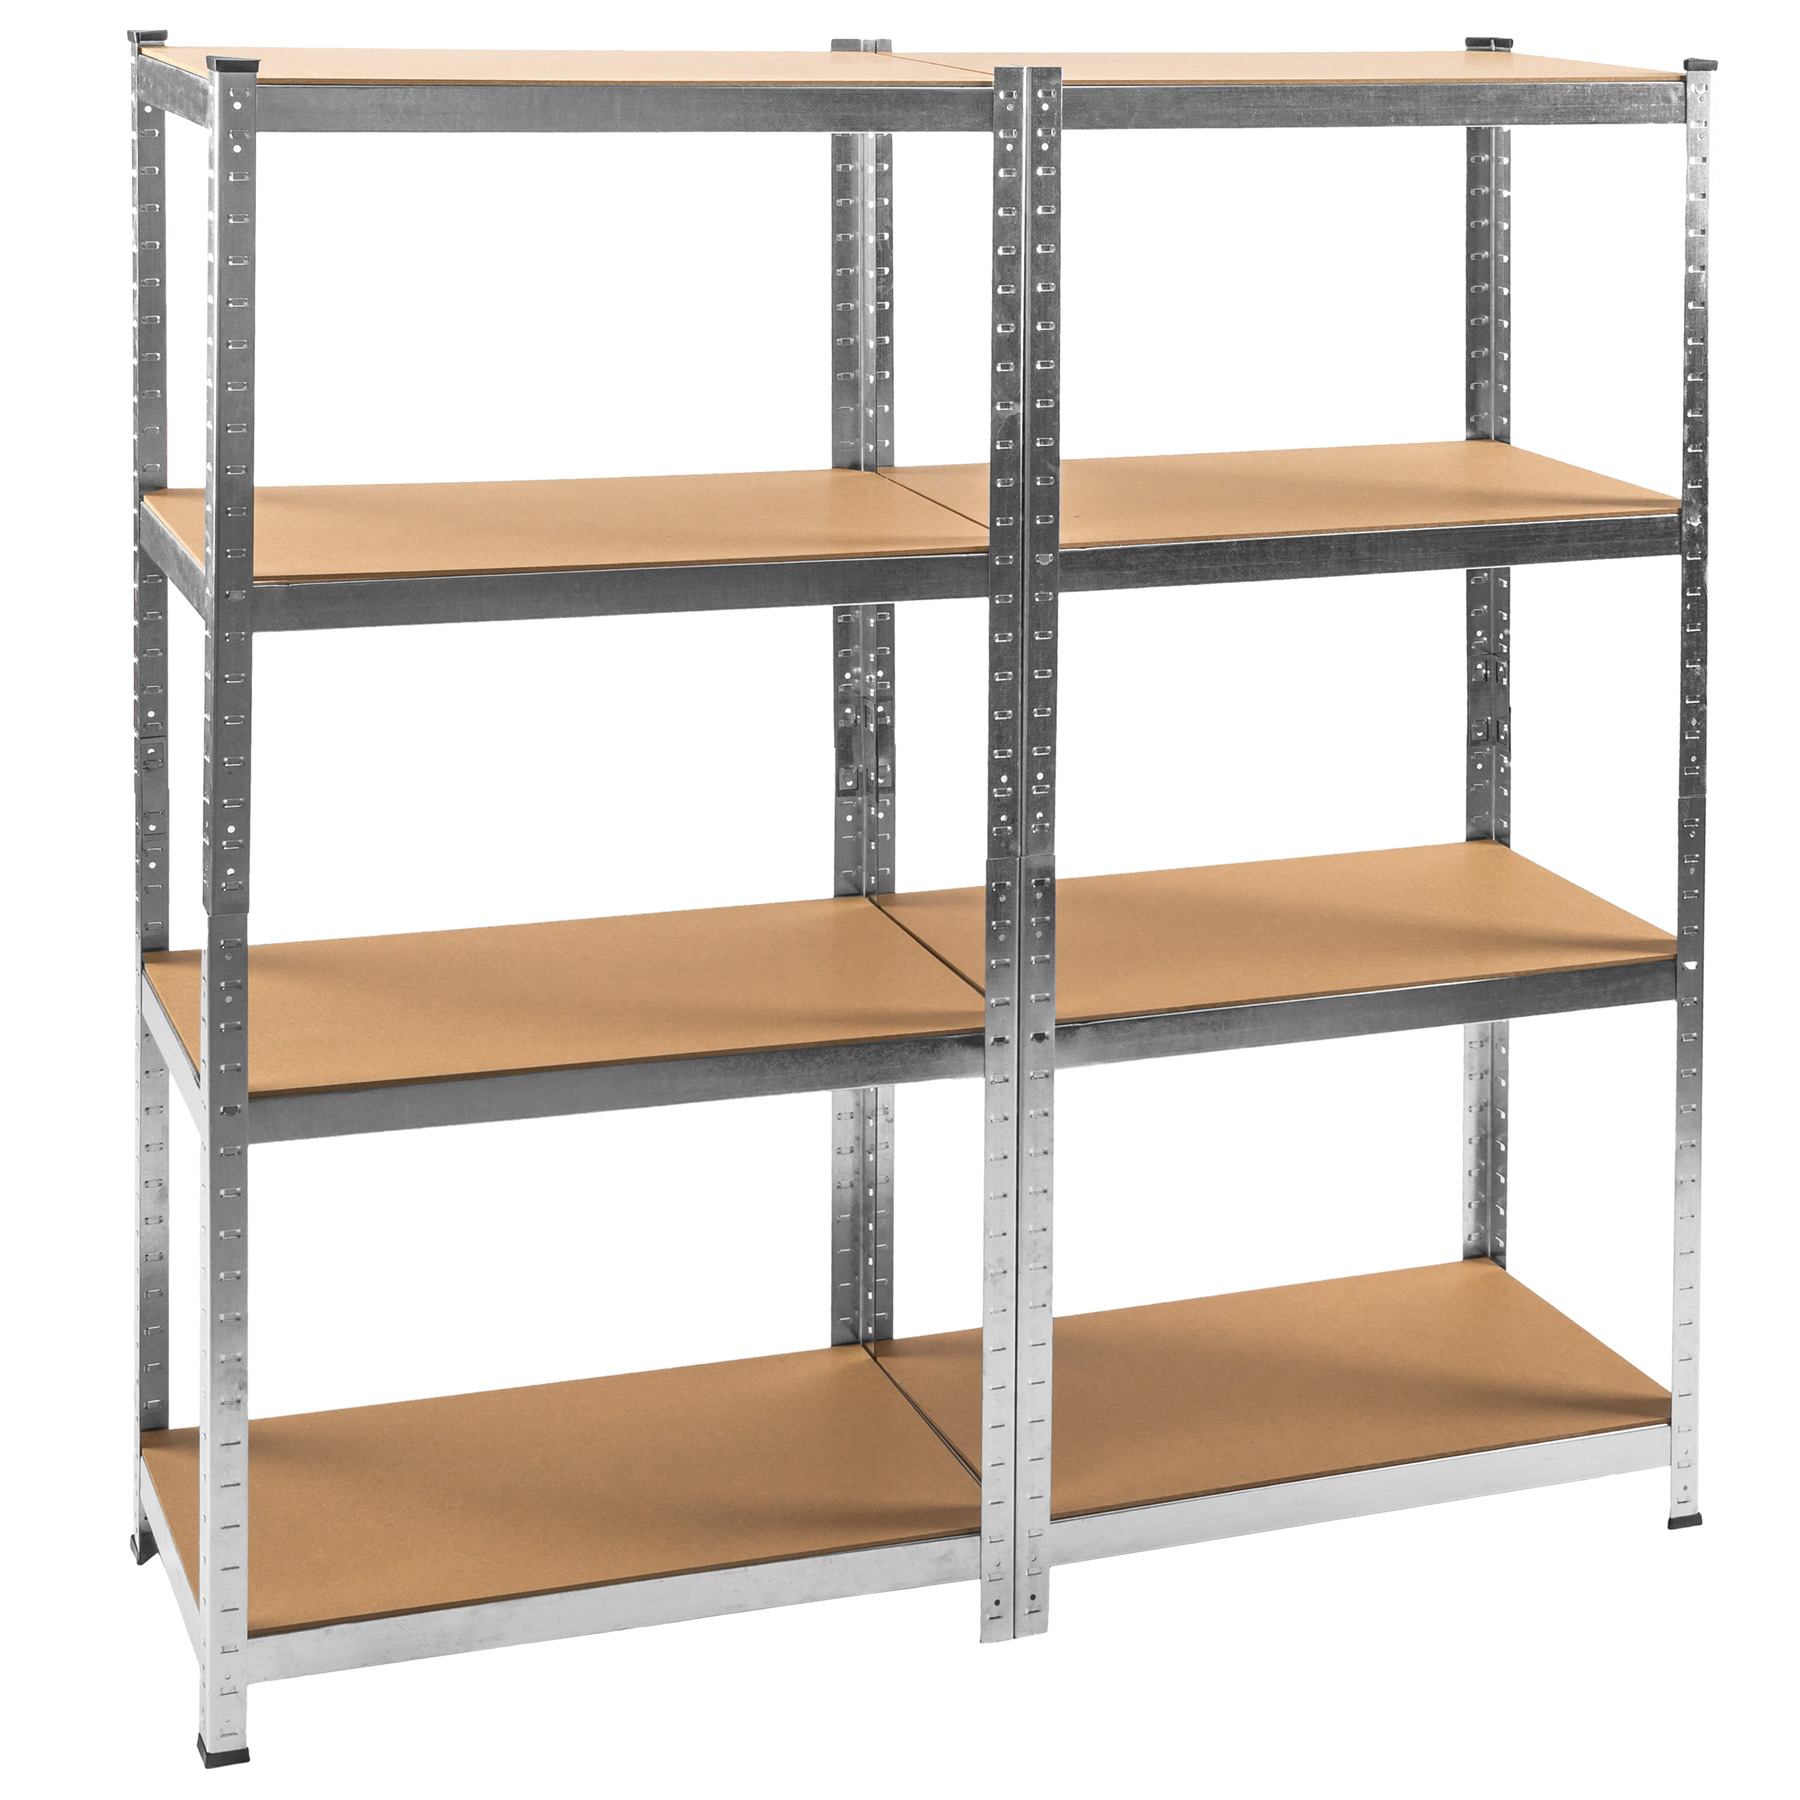 Tag re 640kg charge lourde metallique de rangement objets - Etagere metallique modulable ...